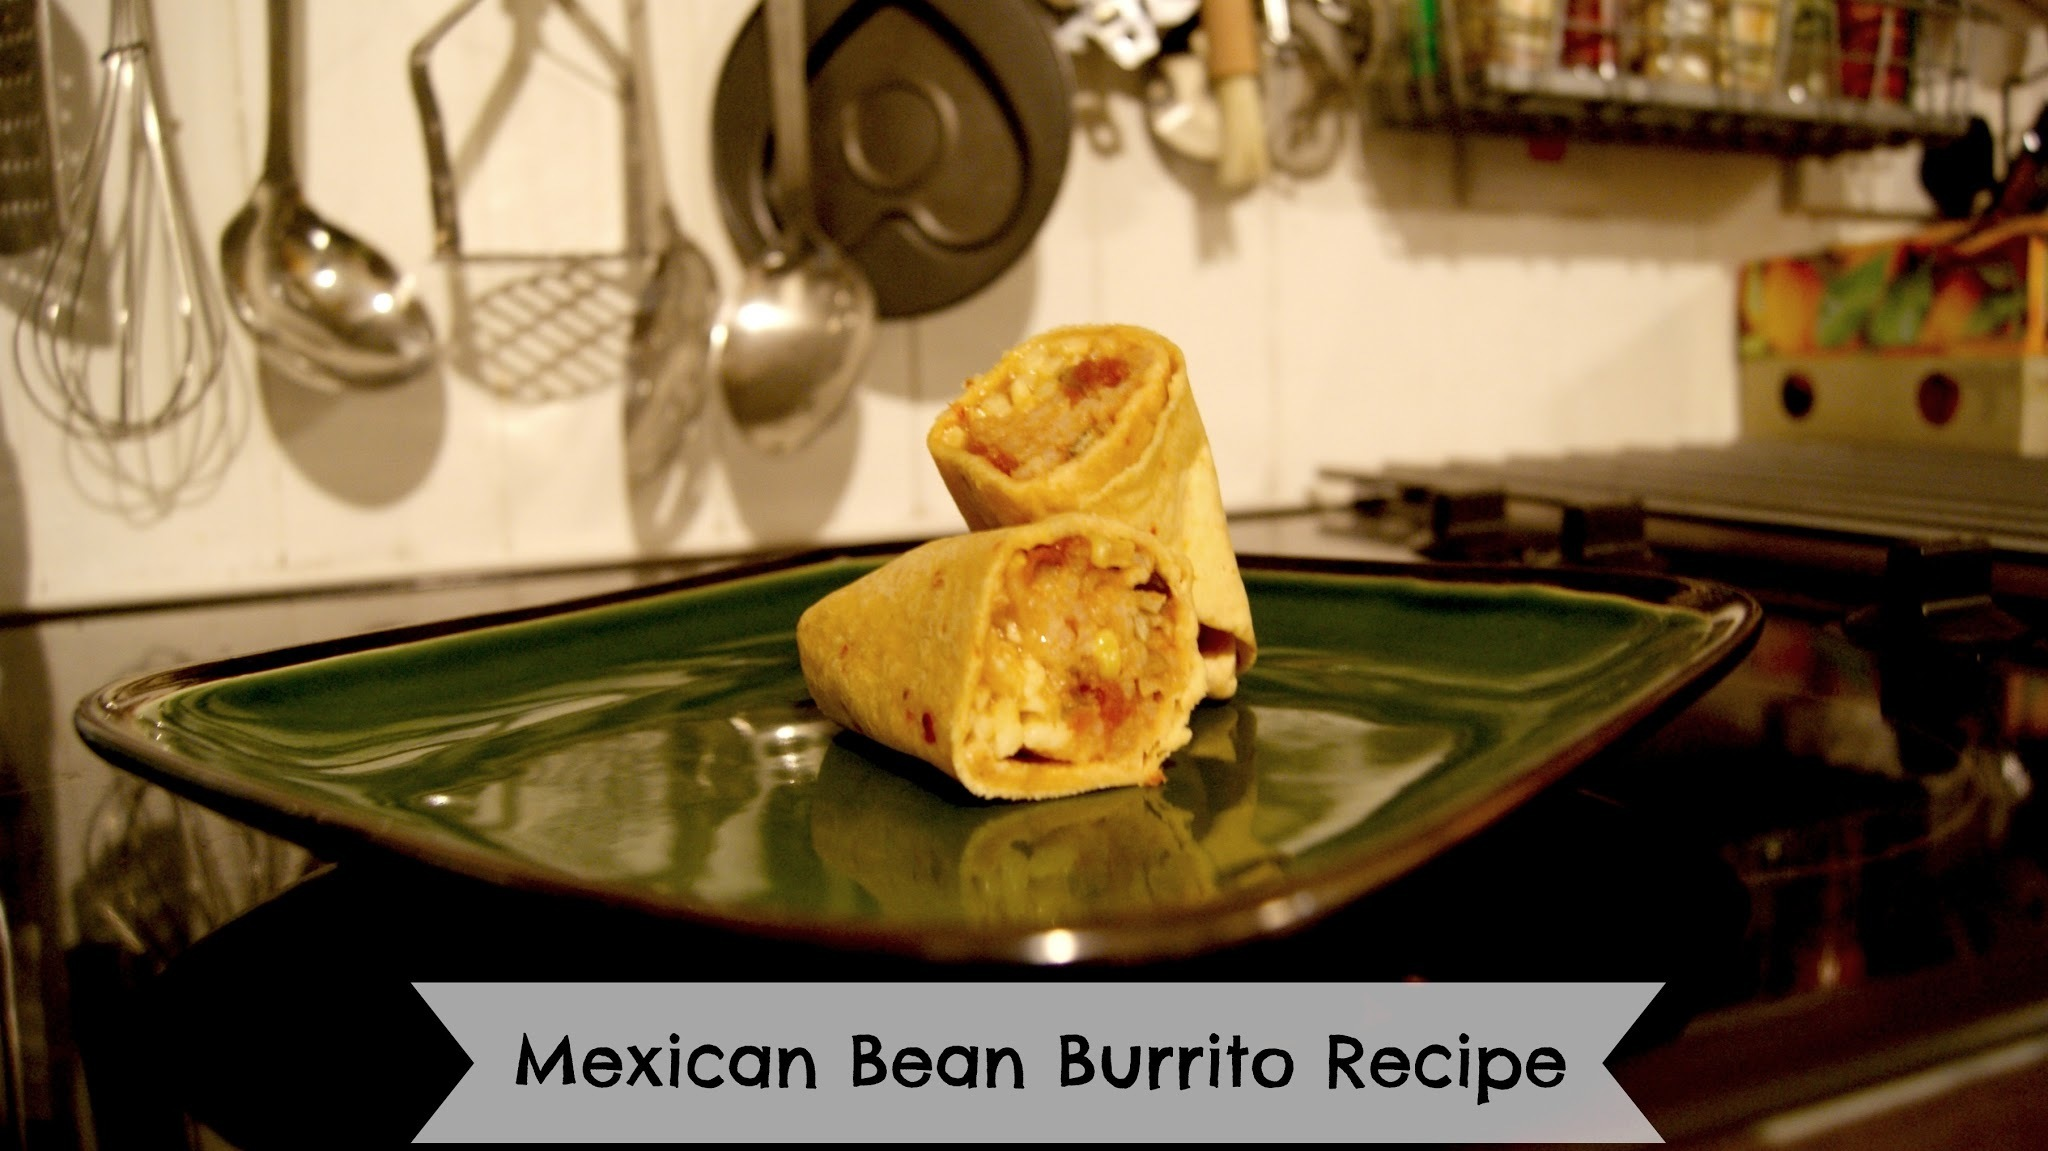 Cooking On A Budget - Meatless Burrito Recipe